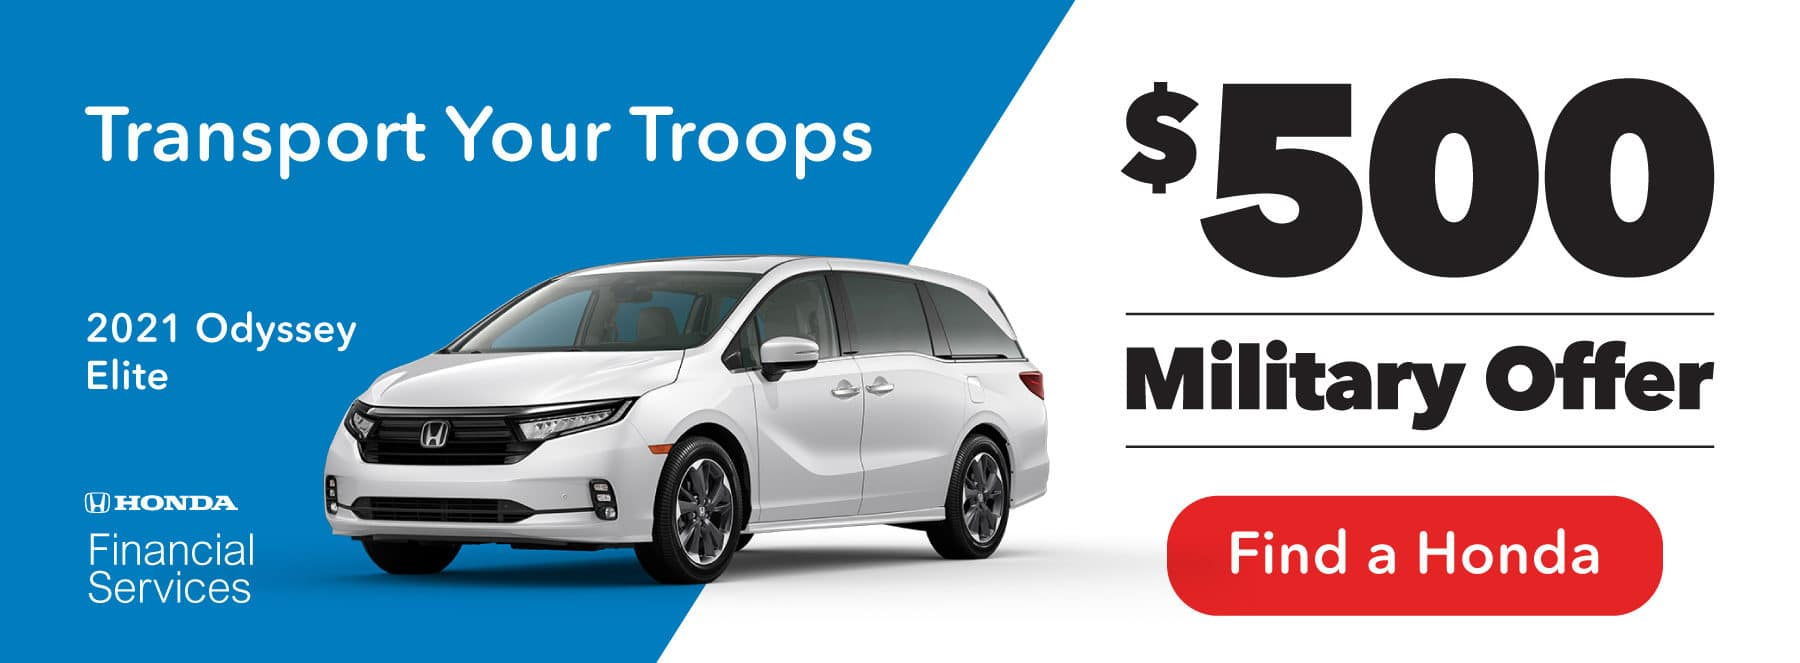 Transport Your Troops — $500 Military Offer